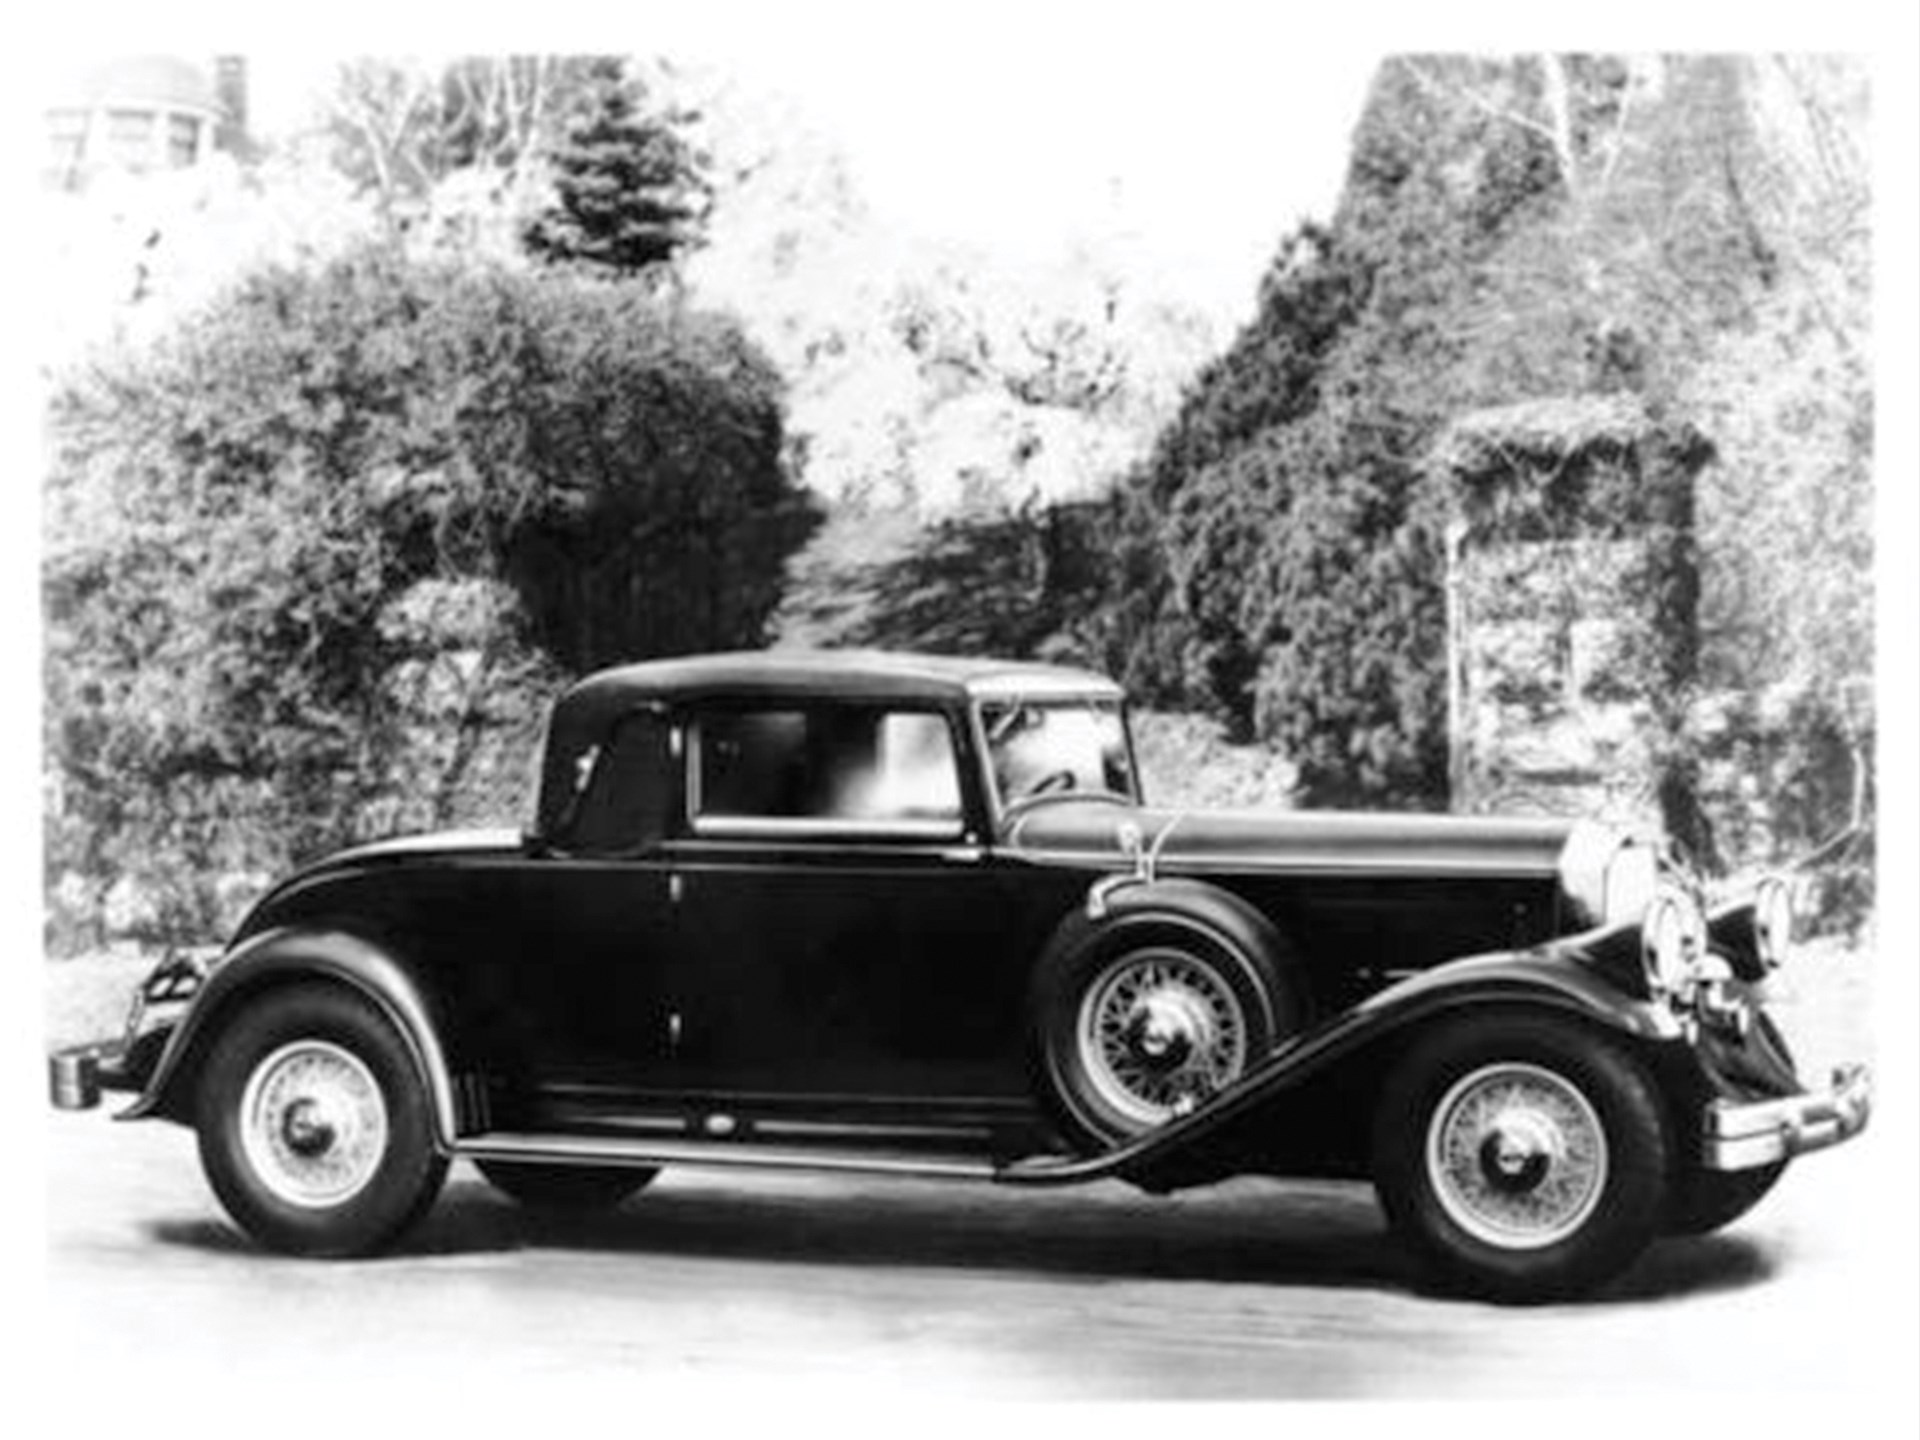 The car as it appeared when new in 1932.